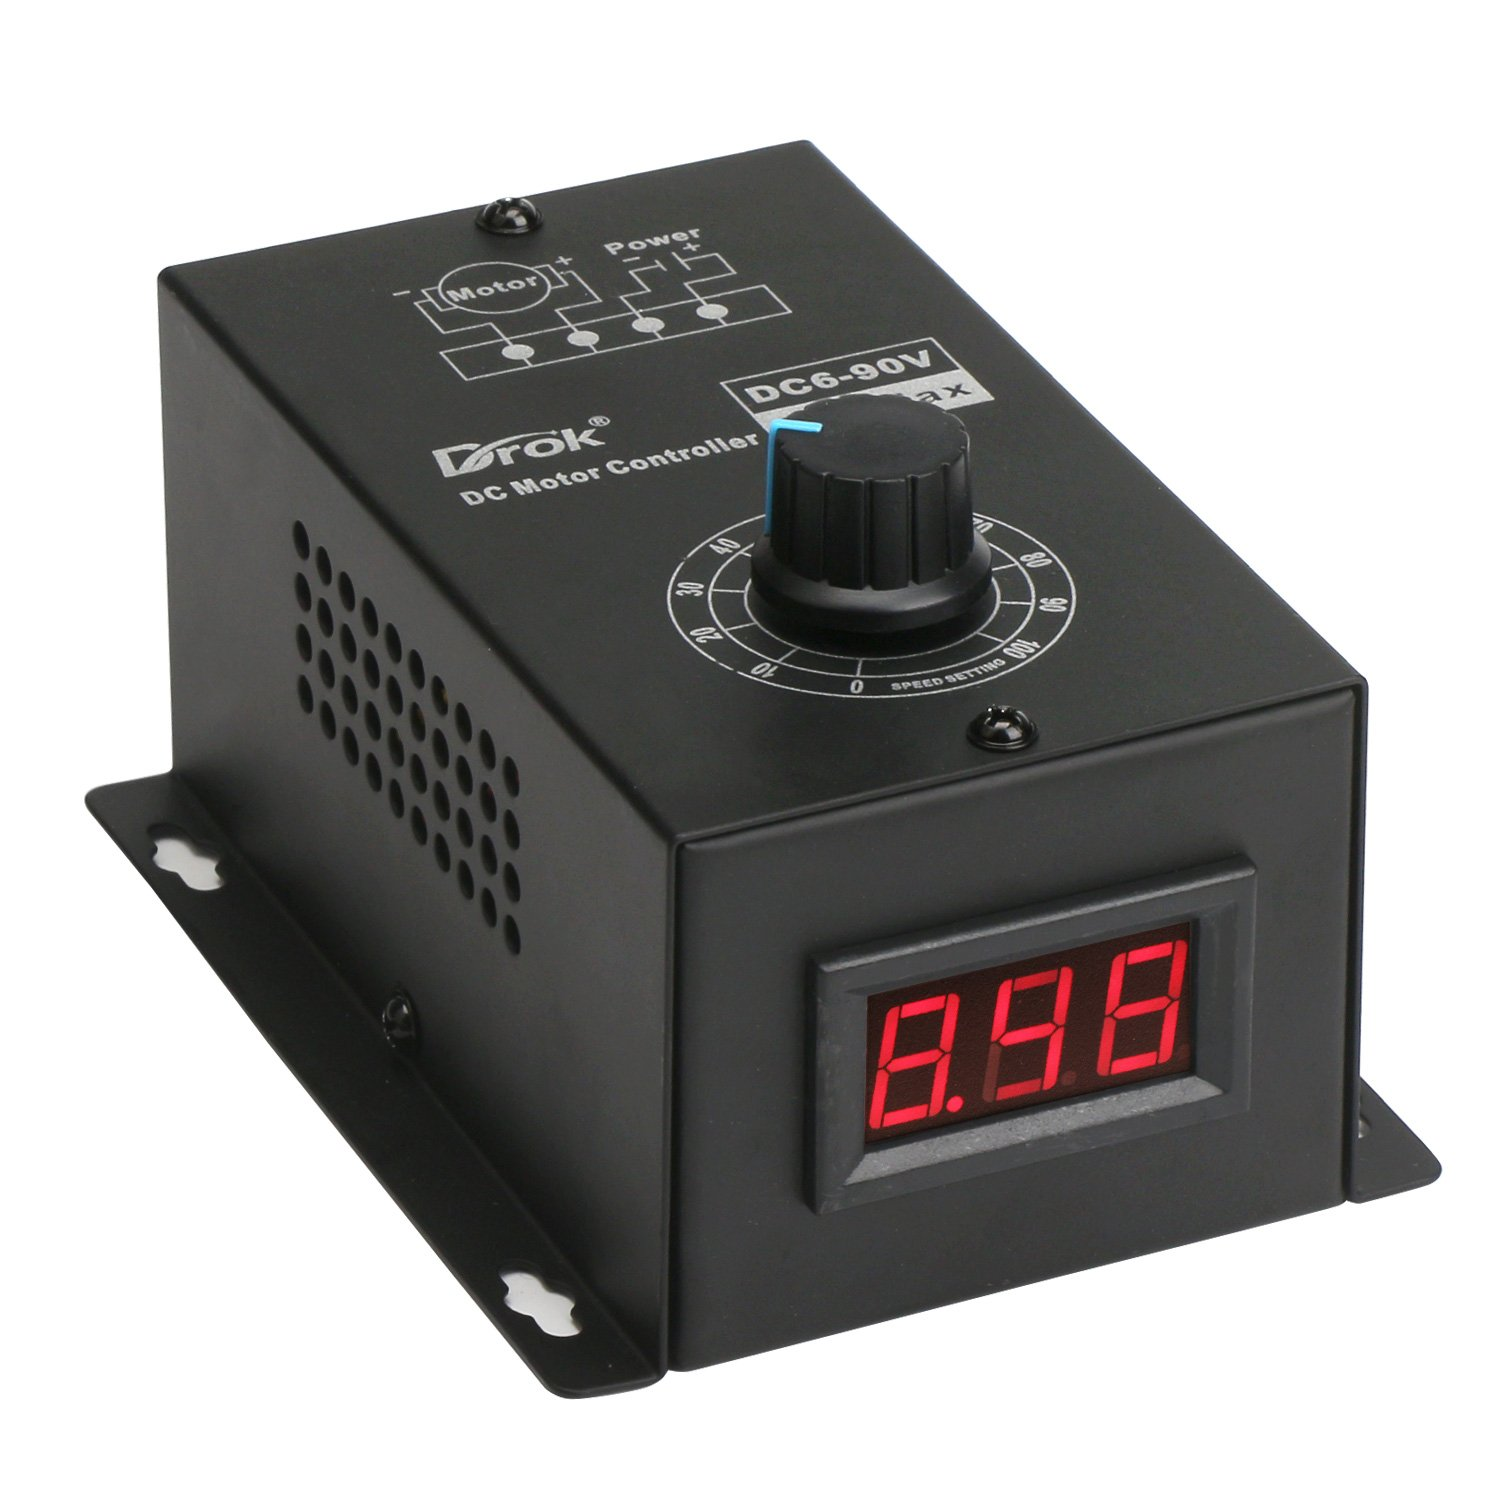 Best Rated In Electrical Motor Controls Helpful Customer Reviews 120vac To 12vdc Power Supply Using Voltage Regulator Lm7812ct Bridge Drok Dc 6 90v 15a Multistage Stepless Brushed Speed Controller Universal 001